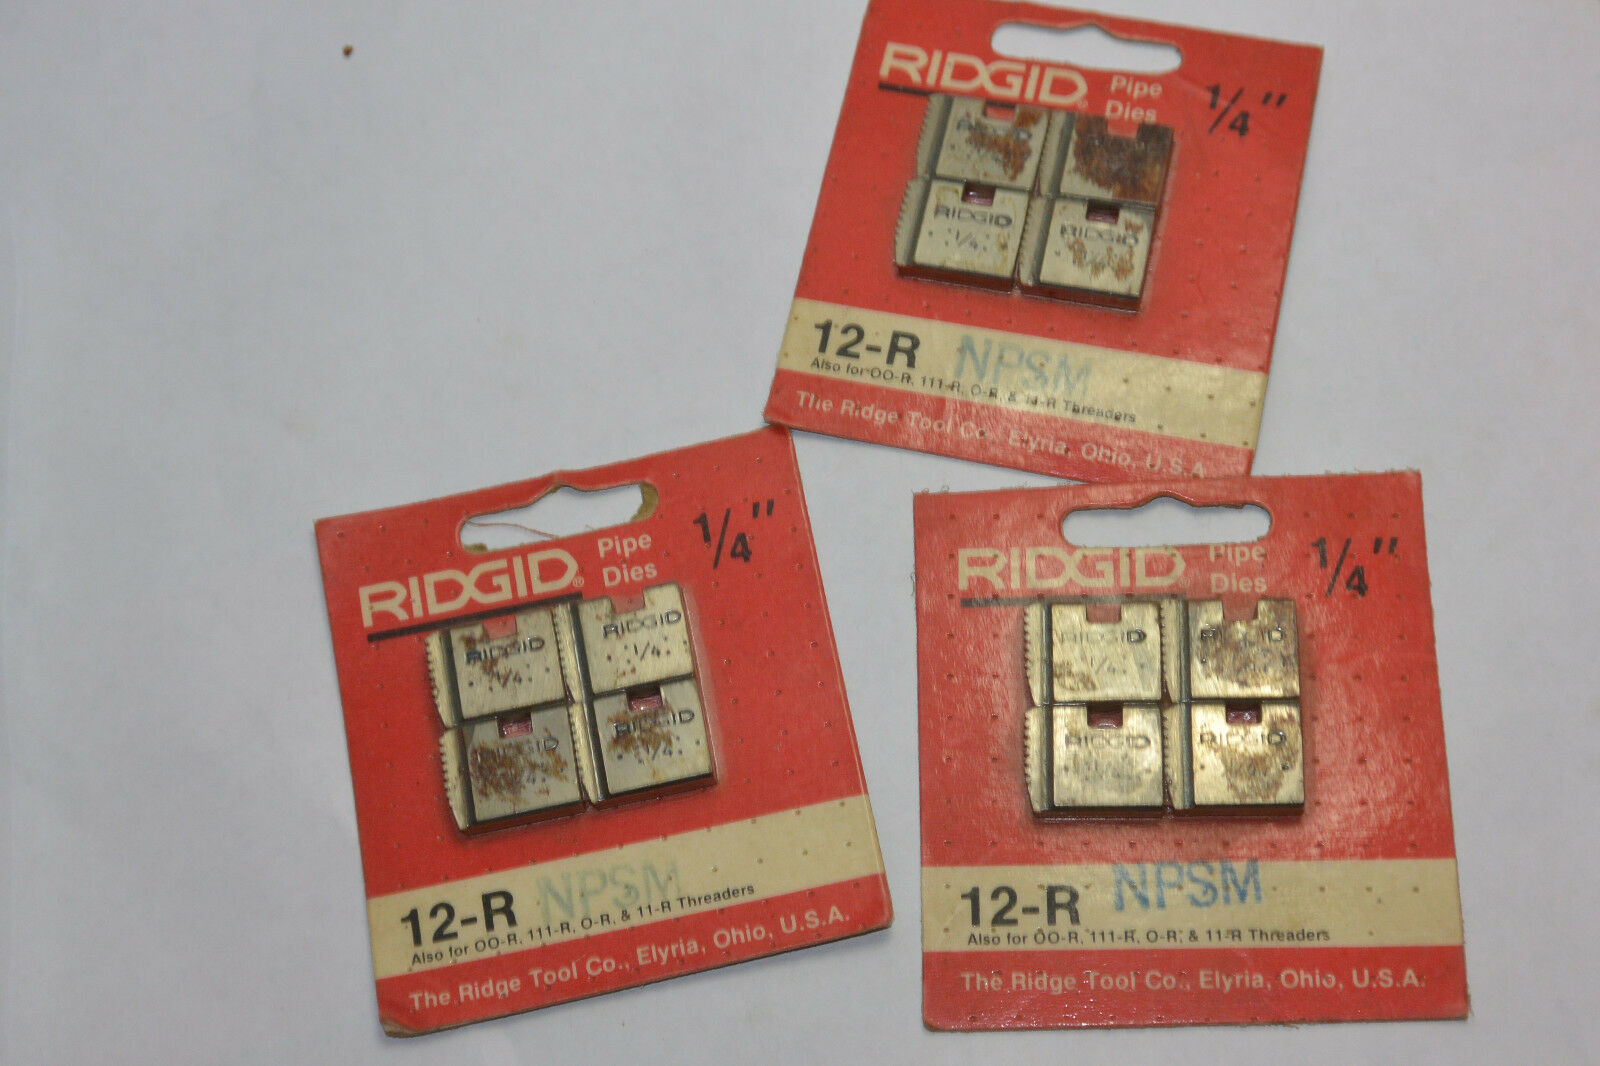 3 NEW PACKAGES NEW RIDGID 1 4  12-R PIPE DIES  NPT  NPSM FOR 00-R 111-R 0-R 11-R